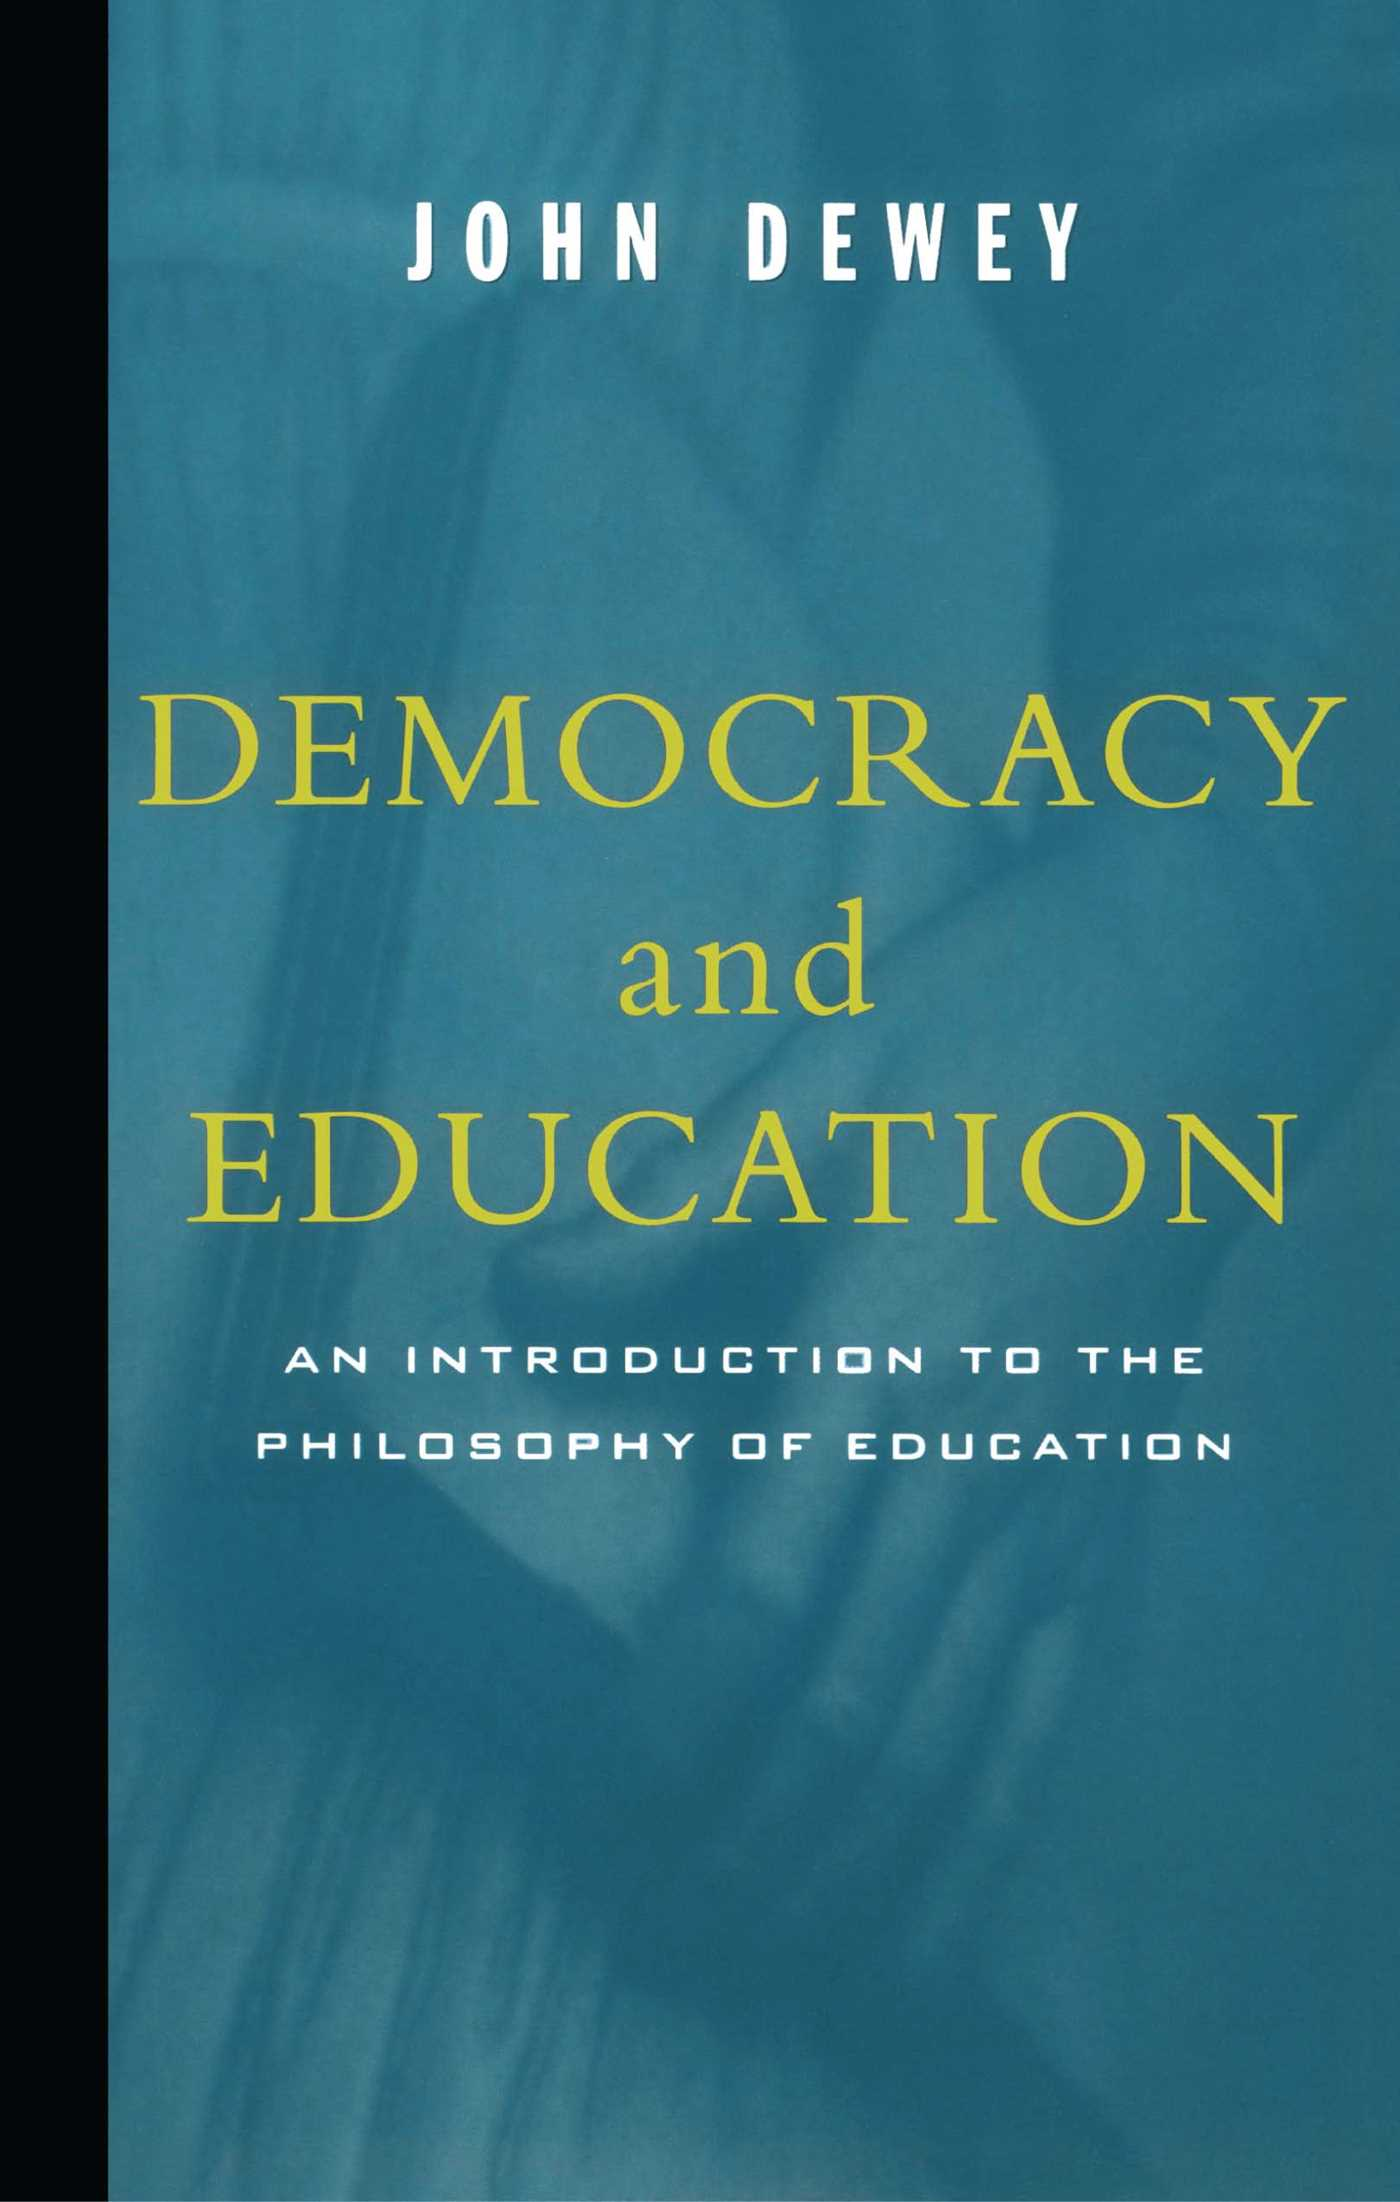 Democracy-and-education-9780684836317_hr